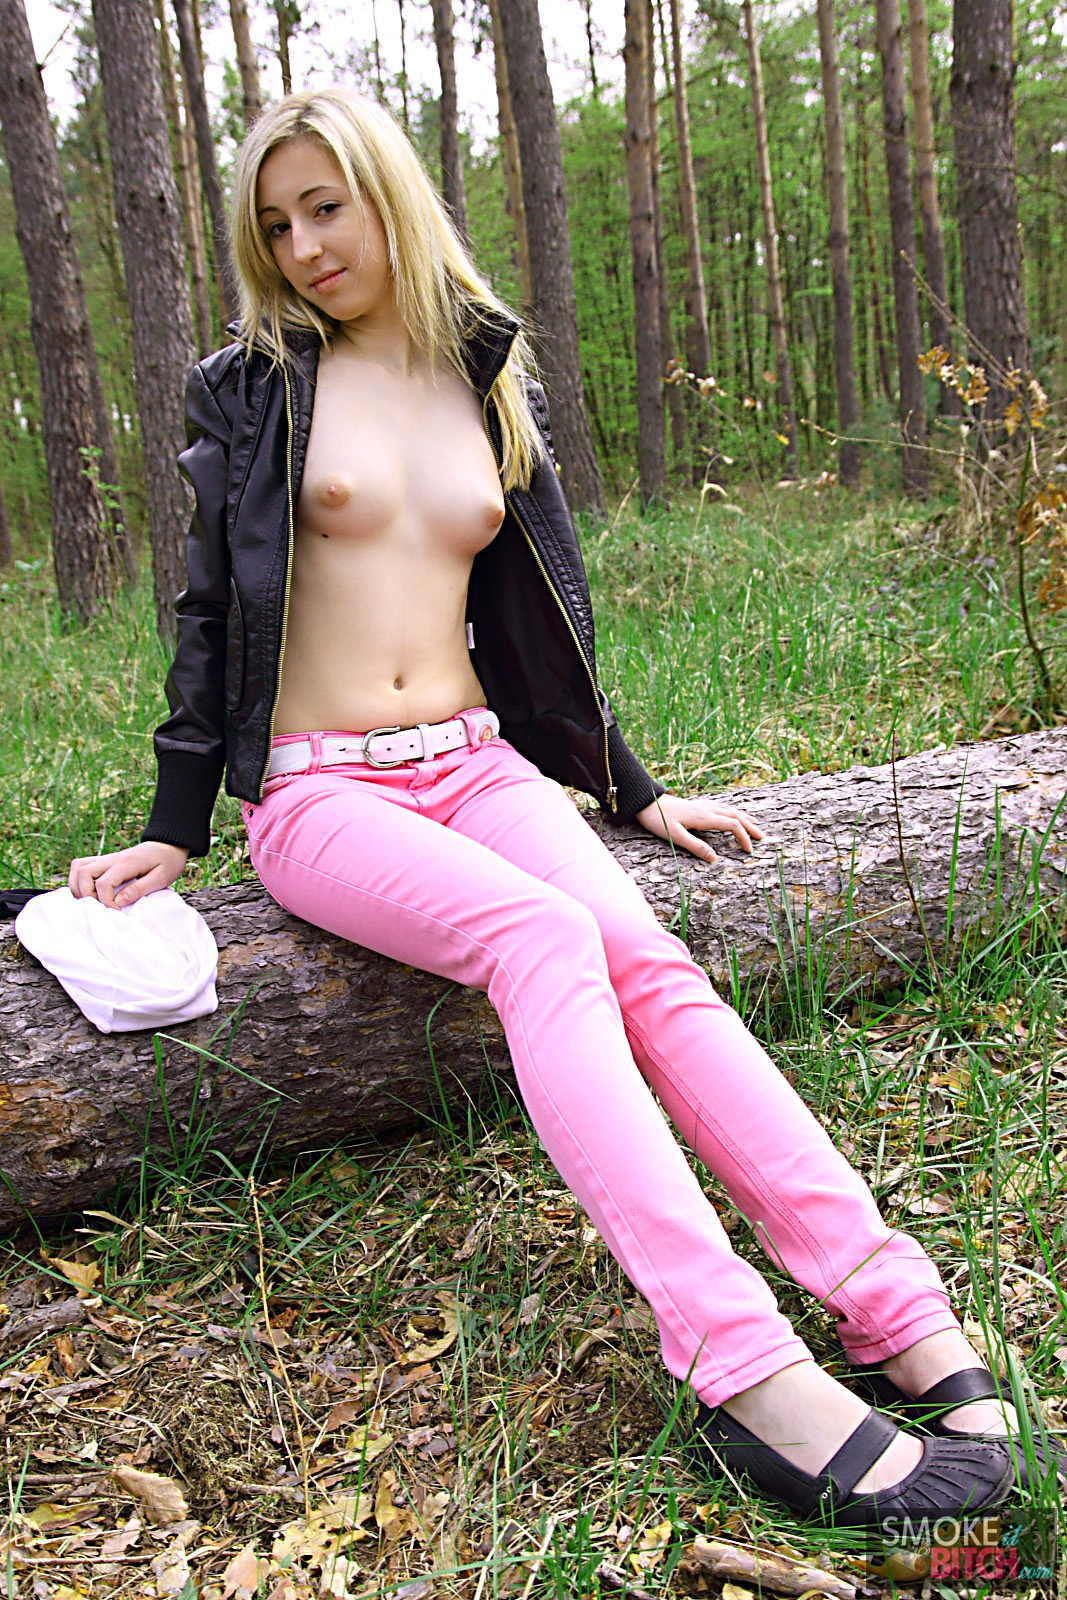 topless-women-smoking-picture-forums-all-naked-girls-with-vagina